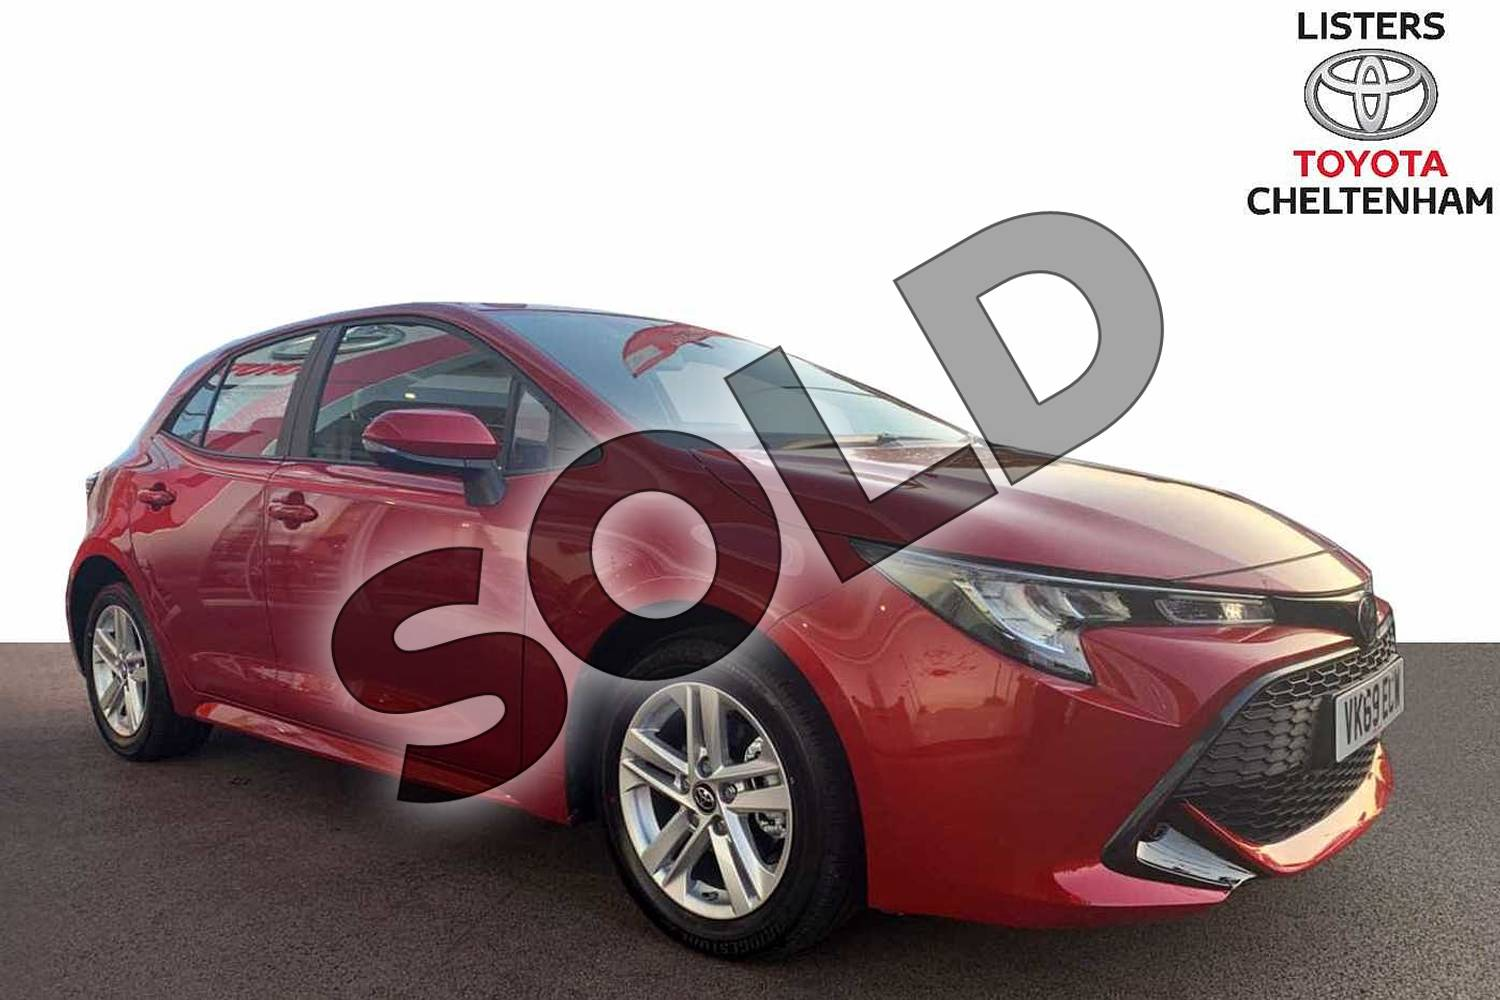 2019 Toyota Corolla Hatchback 1.2T VVT-i Icon 5dr in Scarlet Flare at Listers Toyota Cheltenham